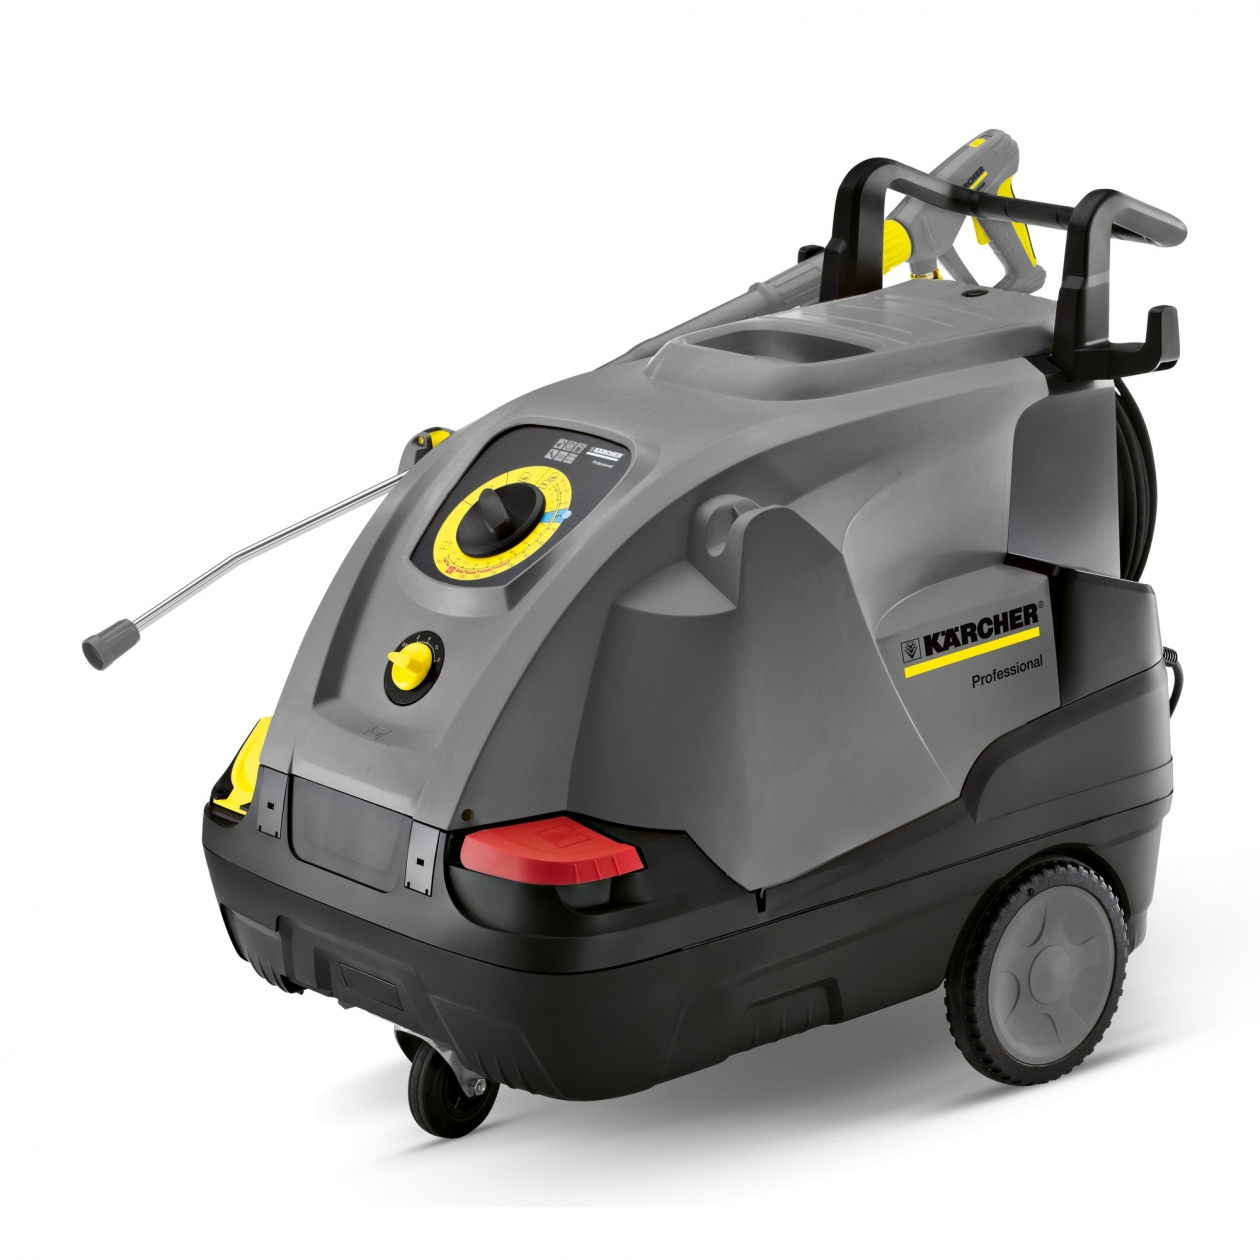 Karcher 1.170-903.0 Electric Hot Water Pressure Washer (3GPM 2000PSI) (HDS 3.0 20 C Ea) by Karcher